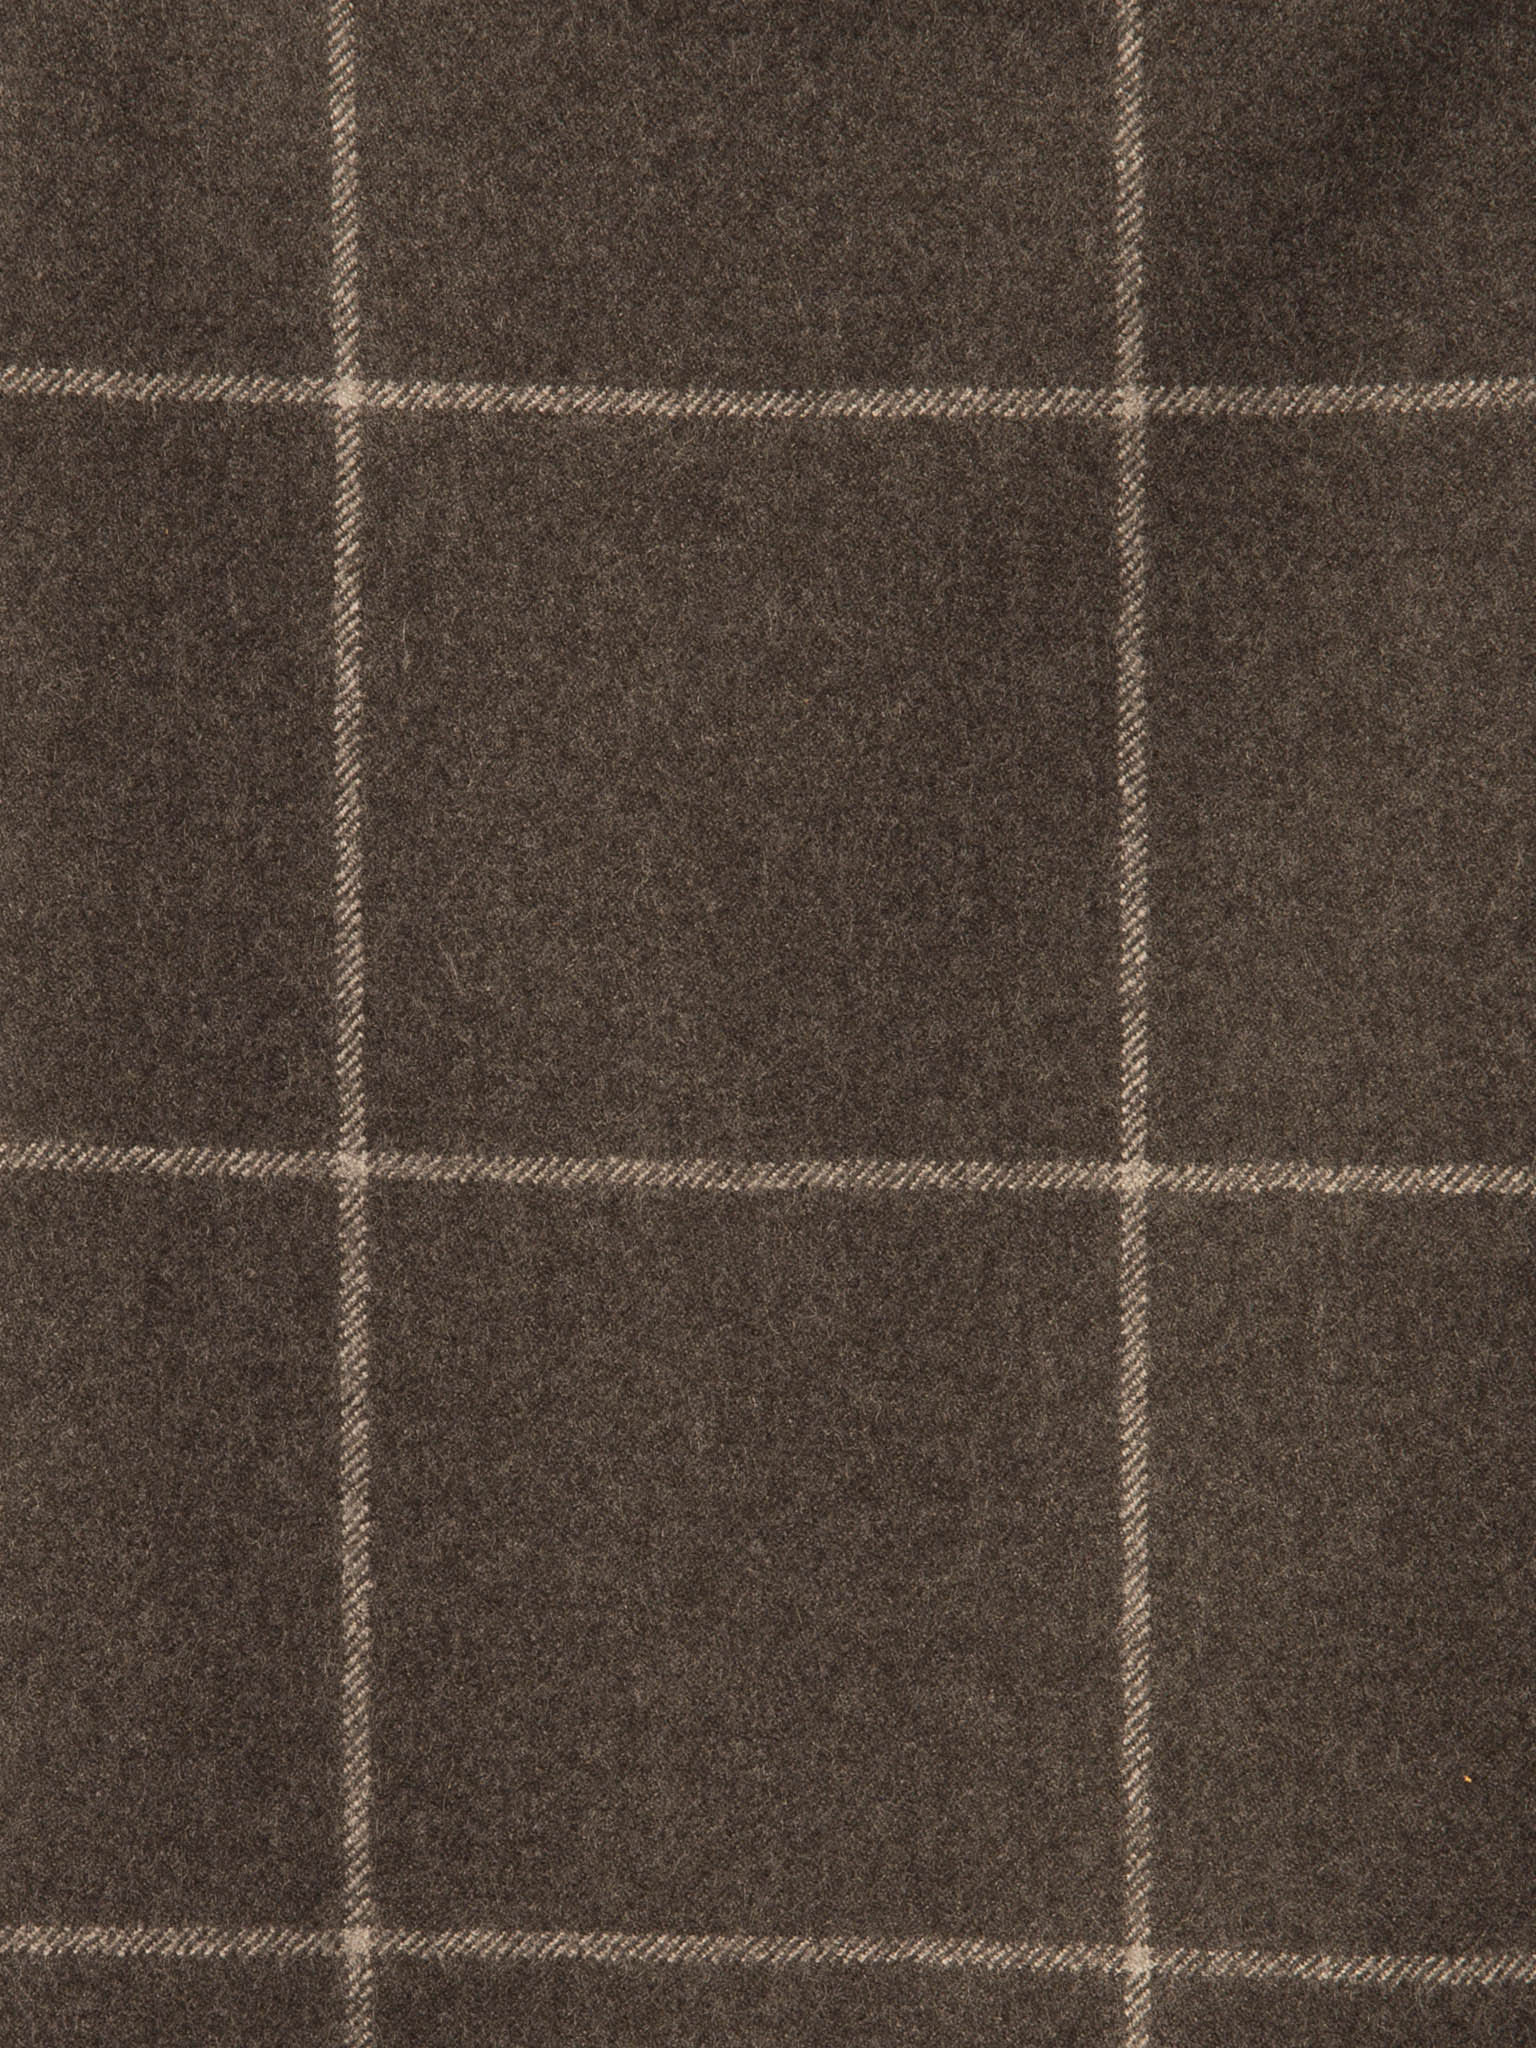 SAVILE ROW WINDOWPANE DE12084